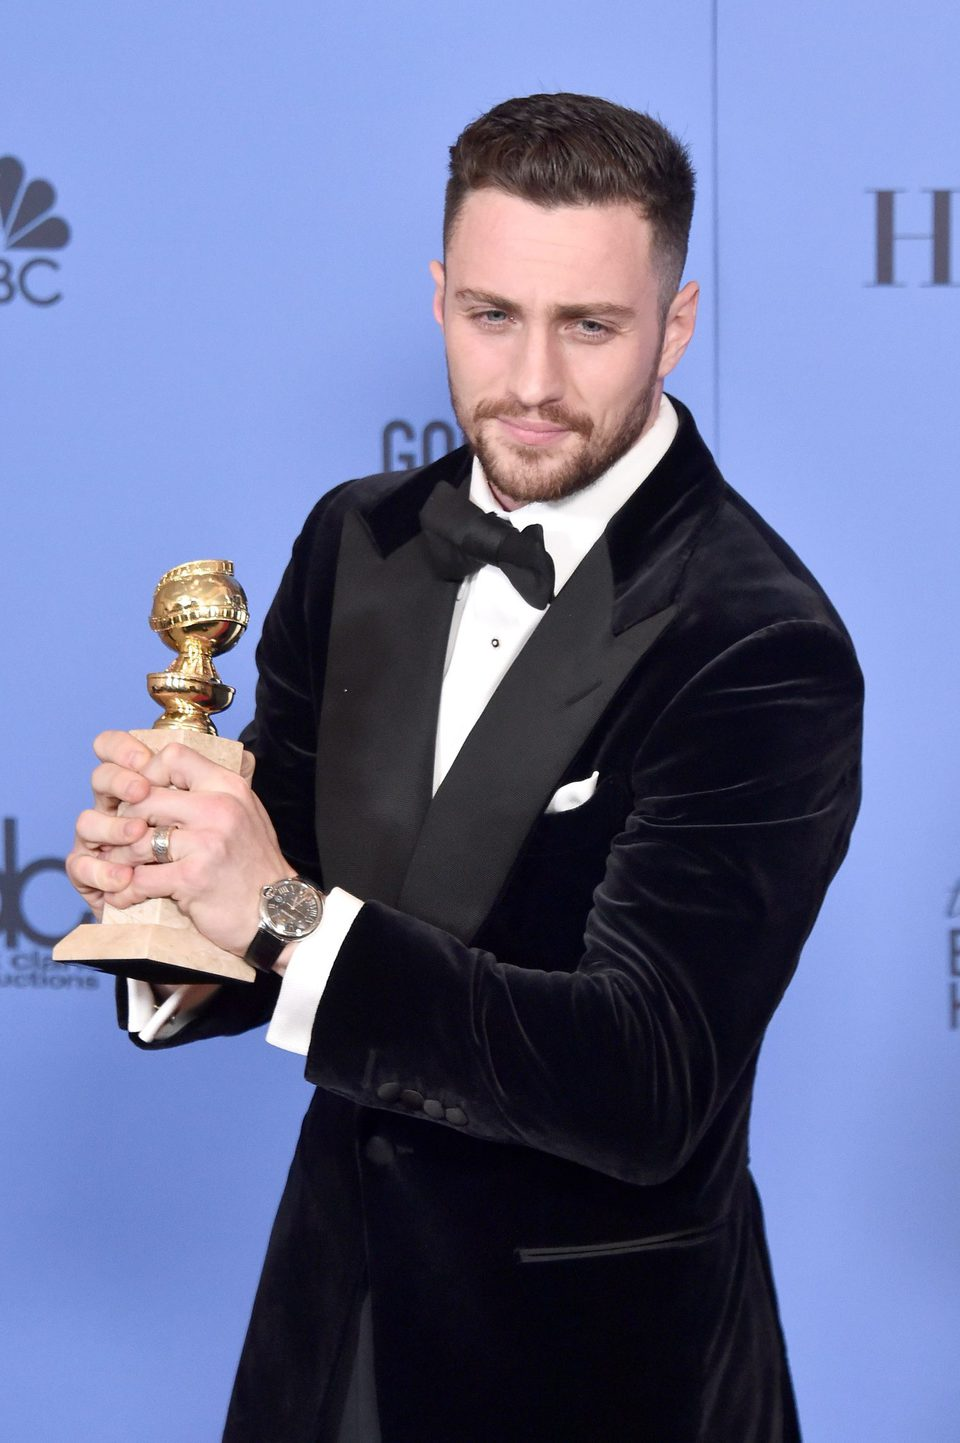 Aaron Taylor-Johnson after Golden Globes 2017 - Photos at ...